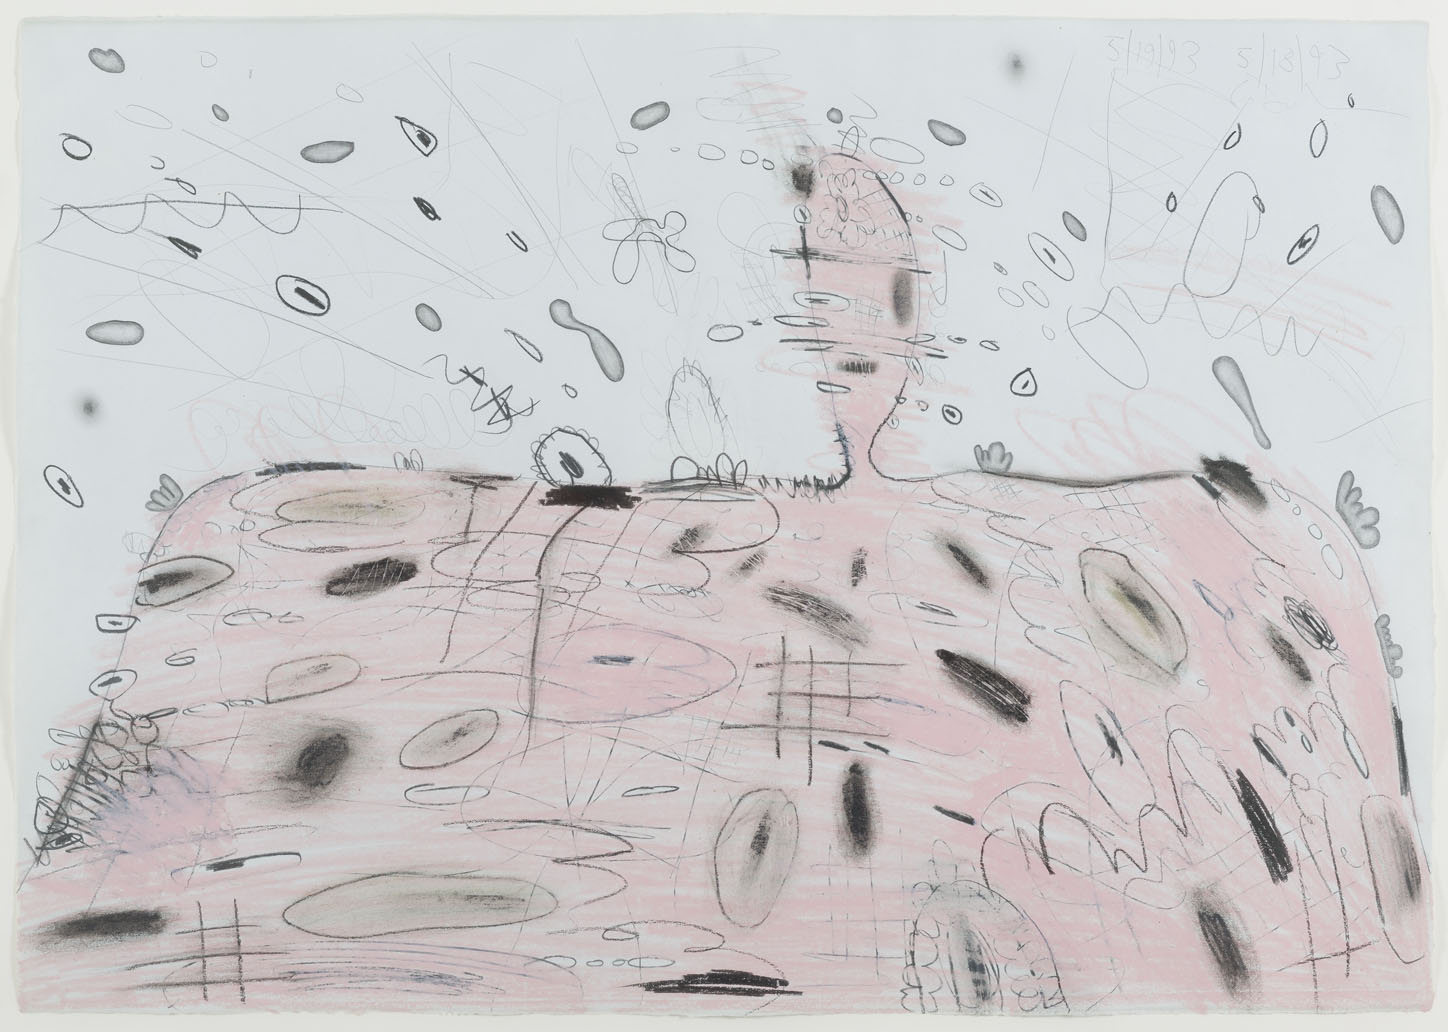 <i>Pink Mound with Eruption (5/18/93, 5/19/93)</i>, 1993, wax crayon and graphite on paper,19 5/8 x 28 inches (49.8 x 71.1 cm)